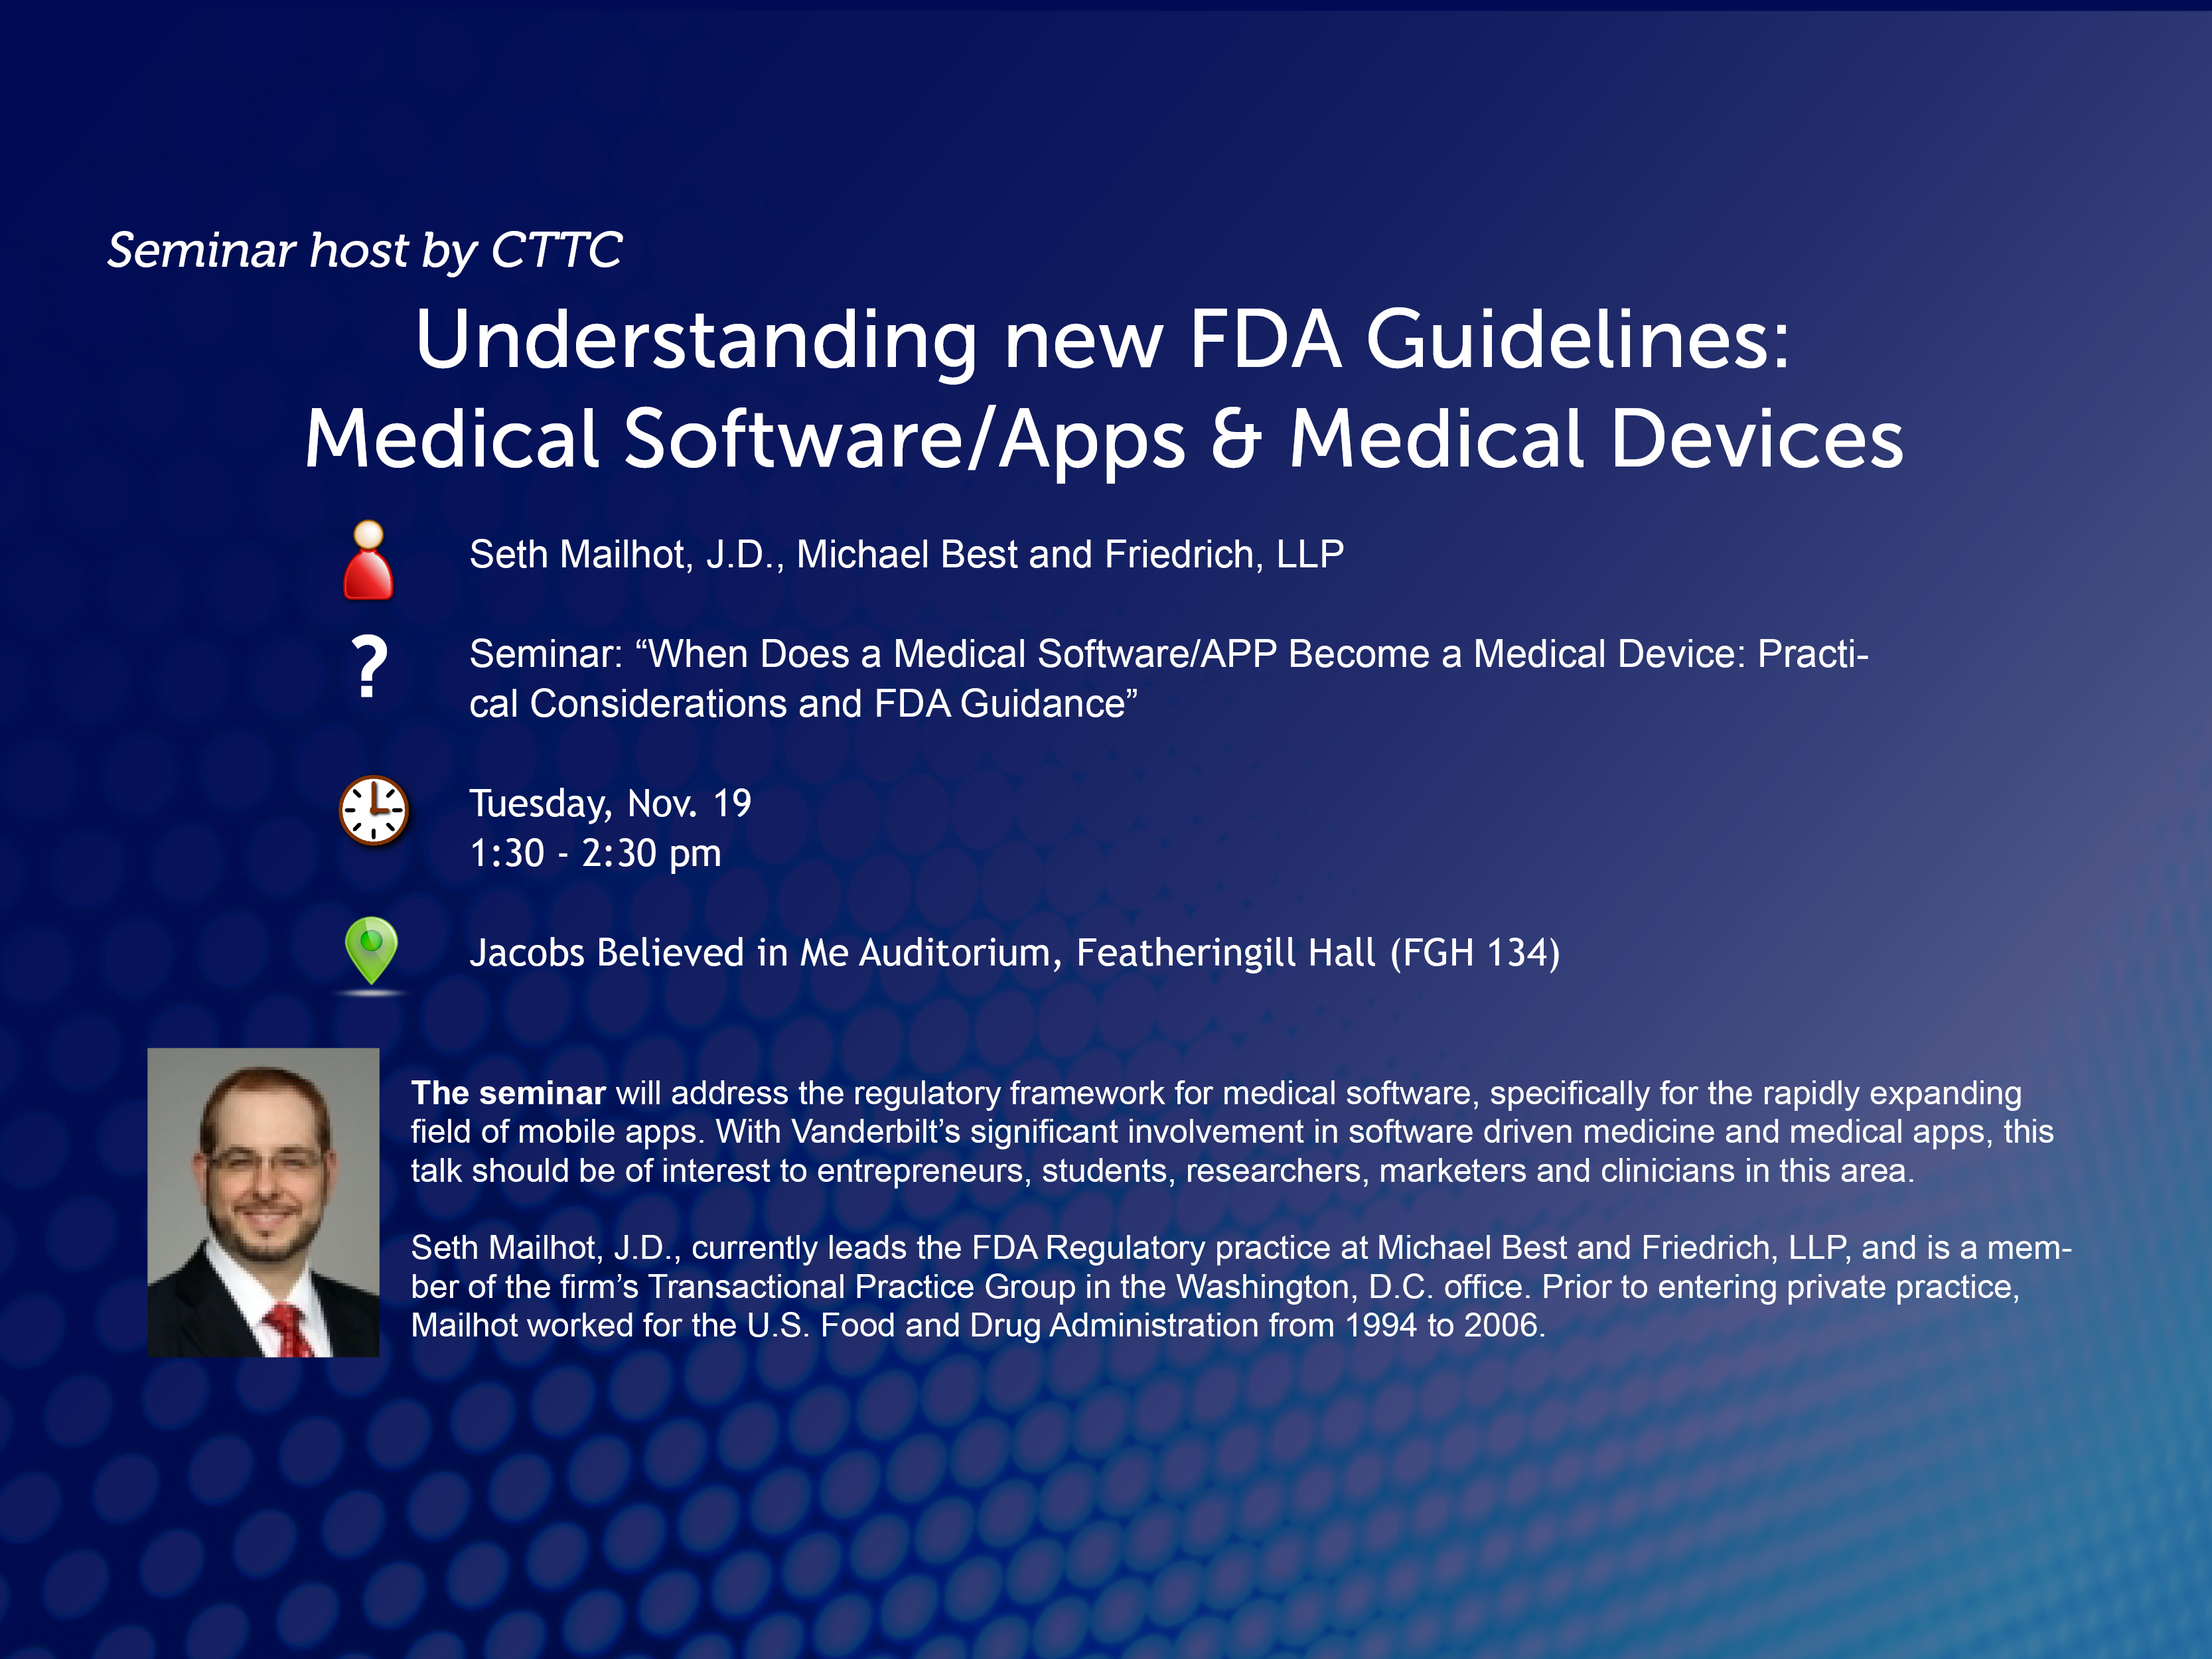 CTTC Seminar: FDA Guidance on Medical Software, Apps and